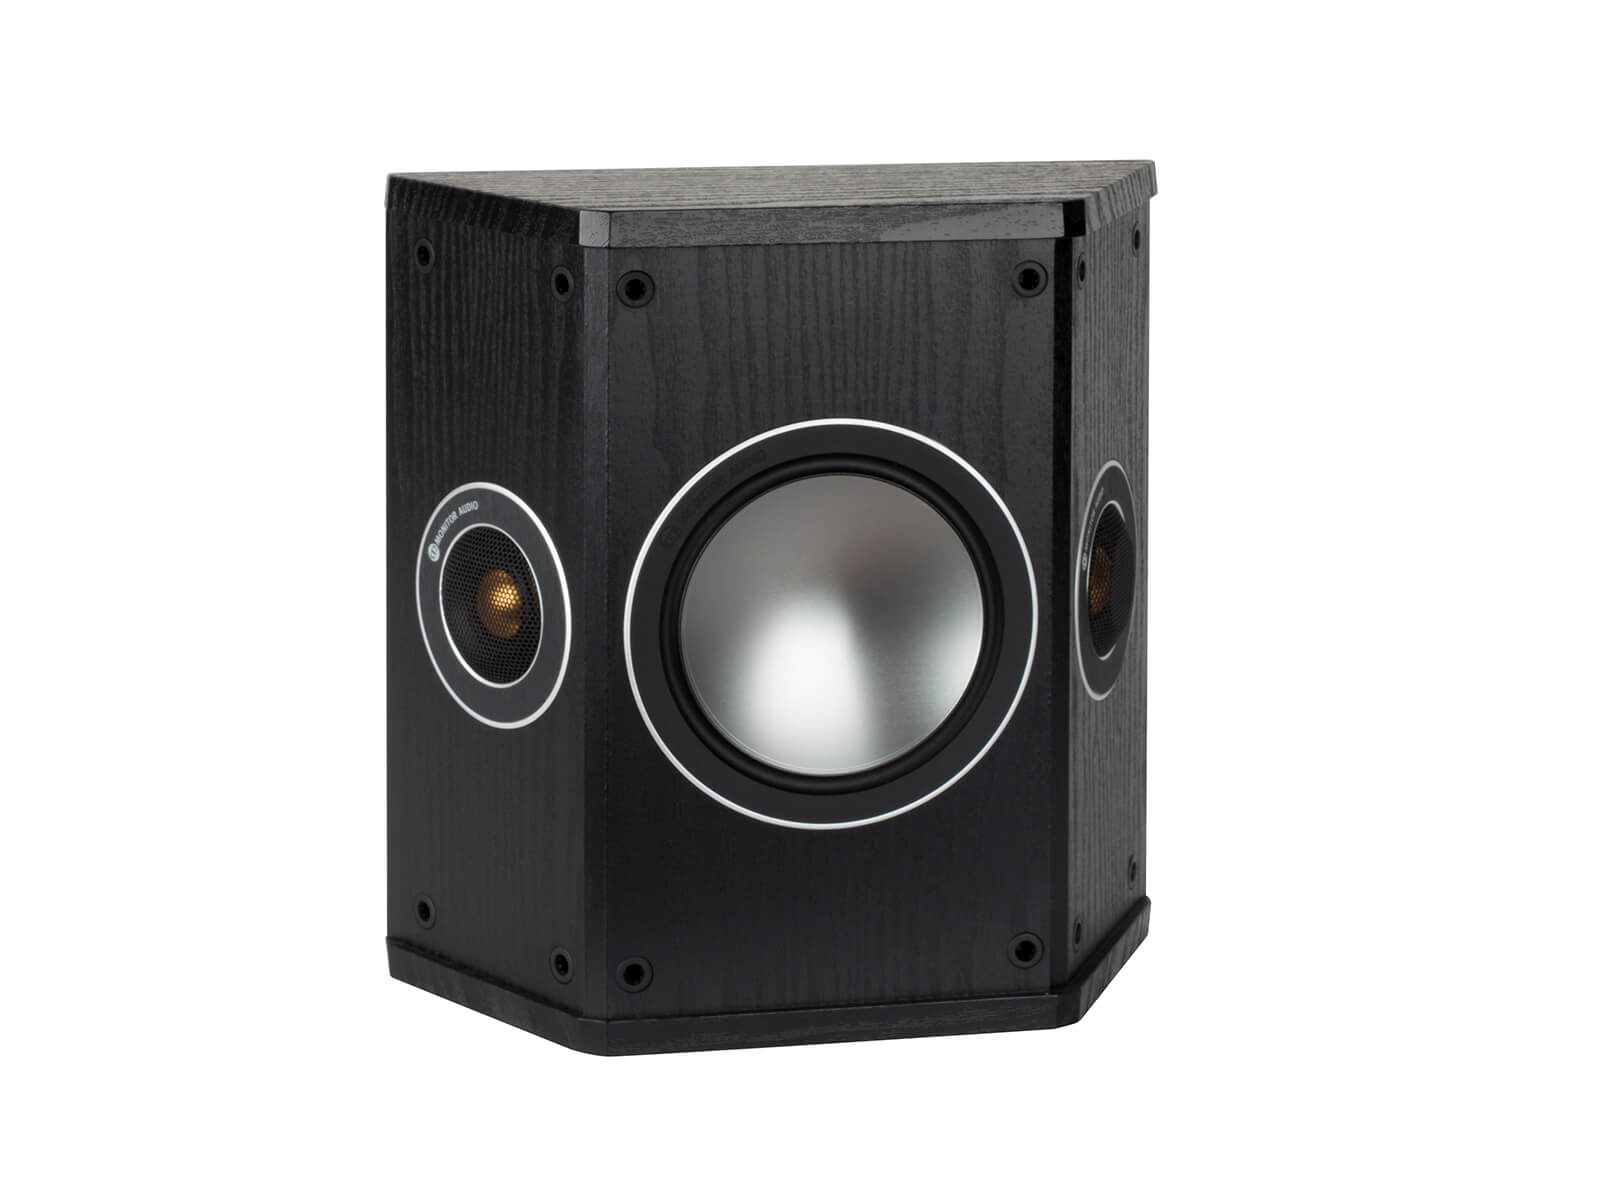 Bronze FX, grille-less surround speakers, with a black oak vinyl finish.